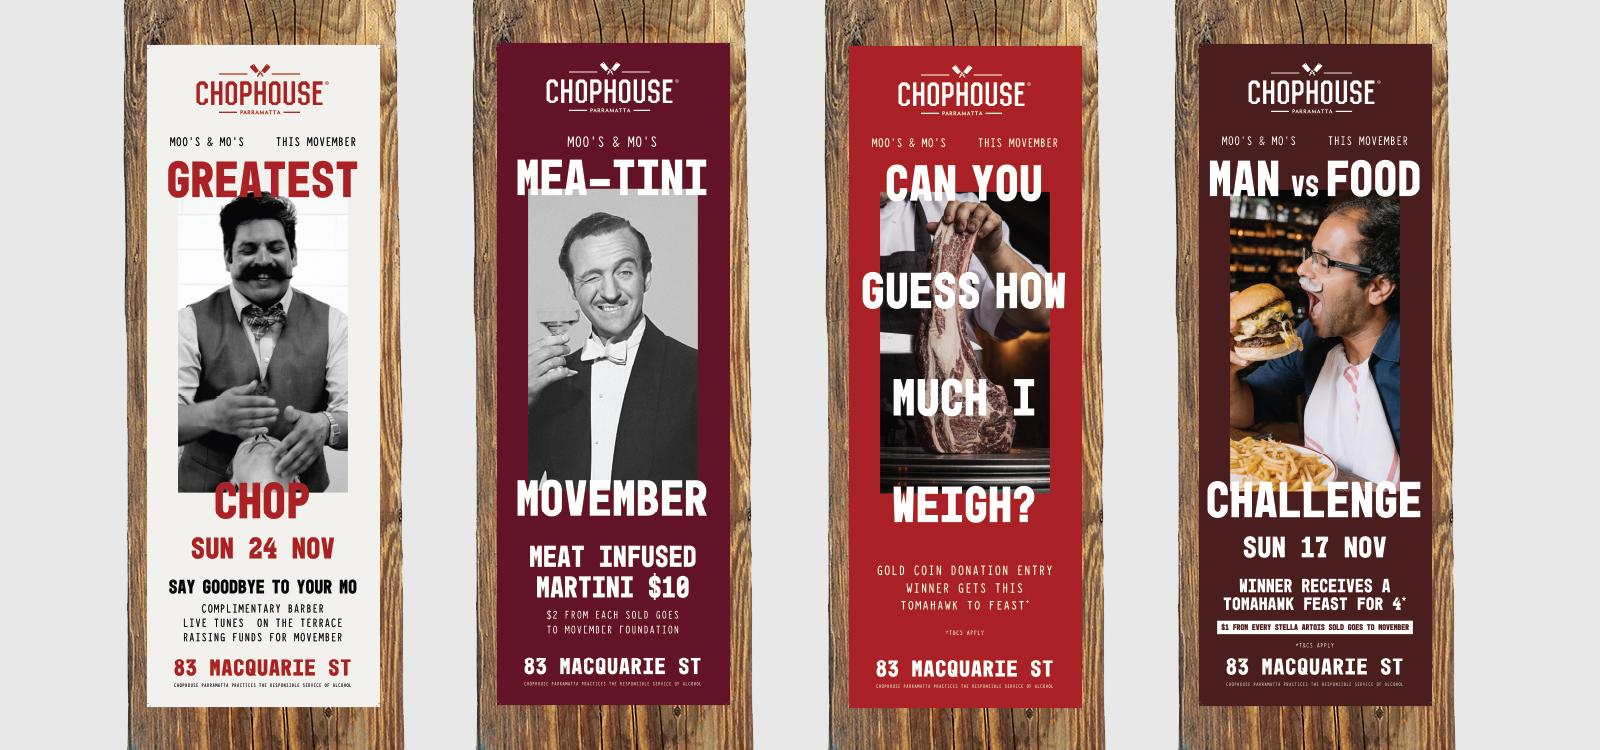 pole poster print design for a movember campaign at the chophouse